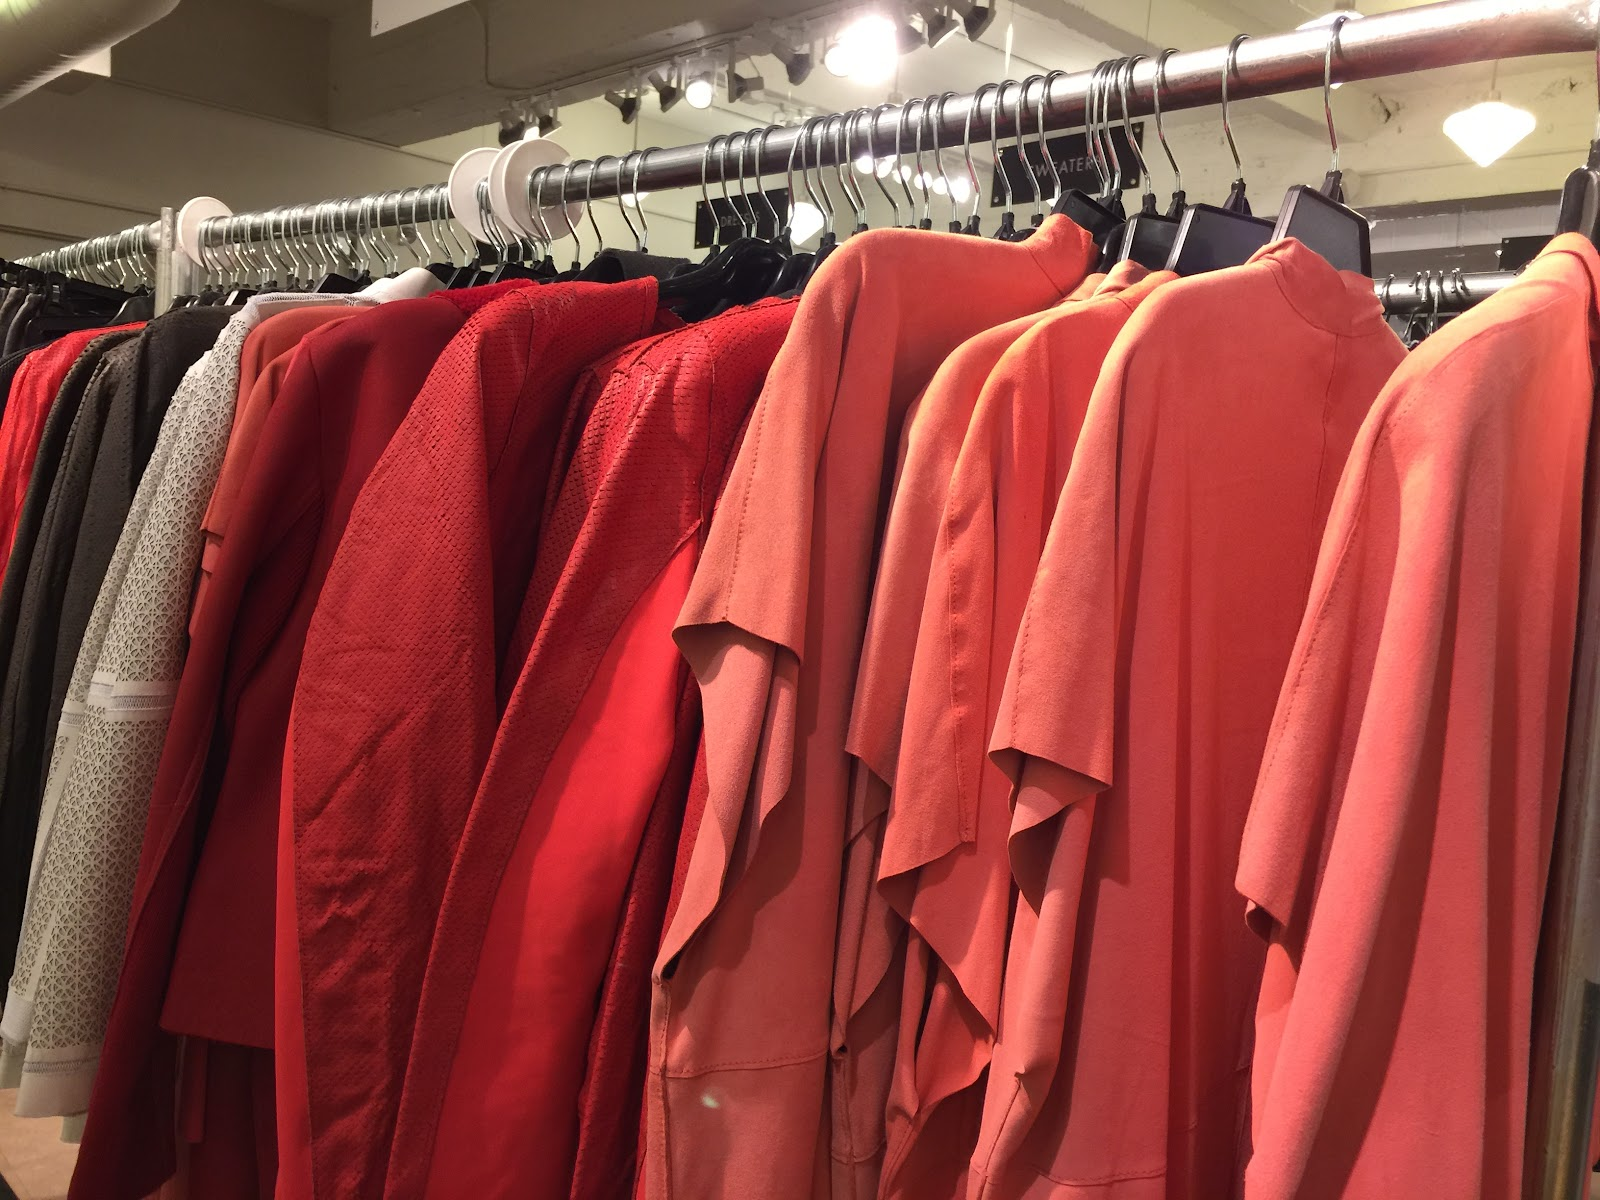 Elie Tahari Sample Sale Has Your Next 9 to 5 Look | Practically Haute